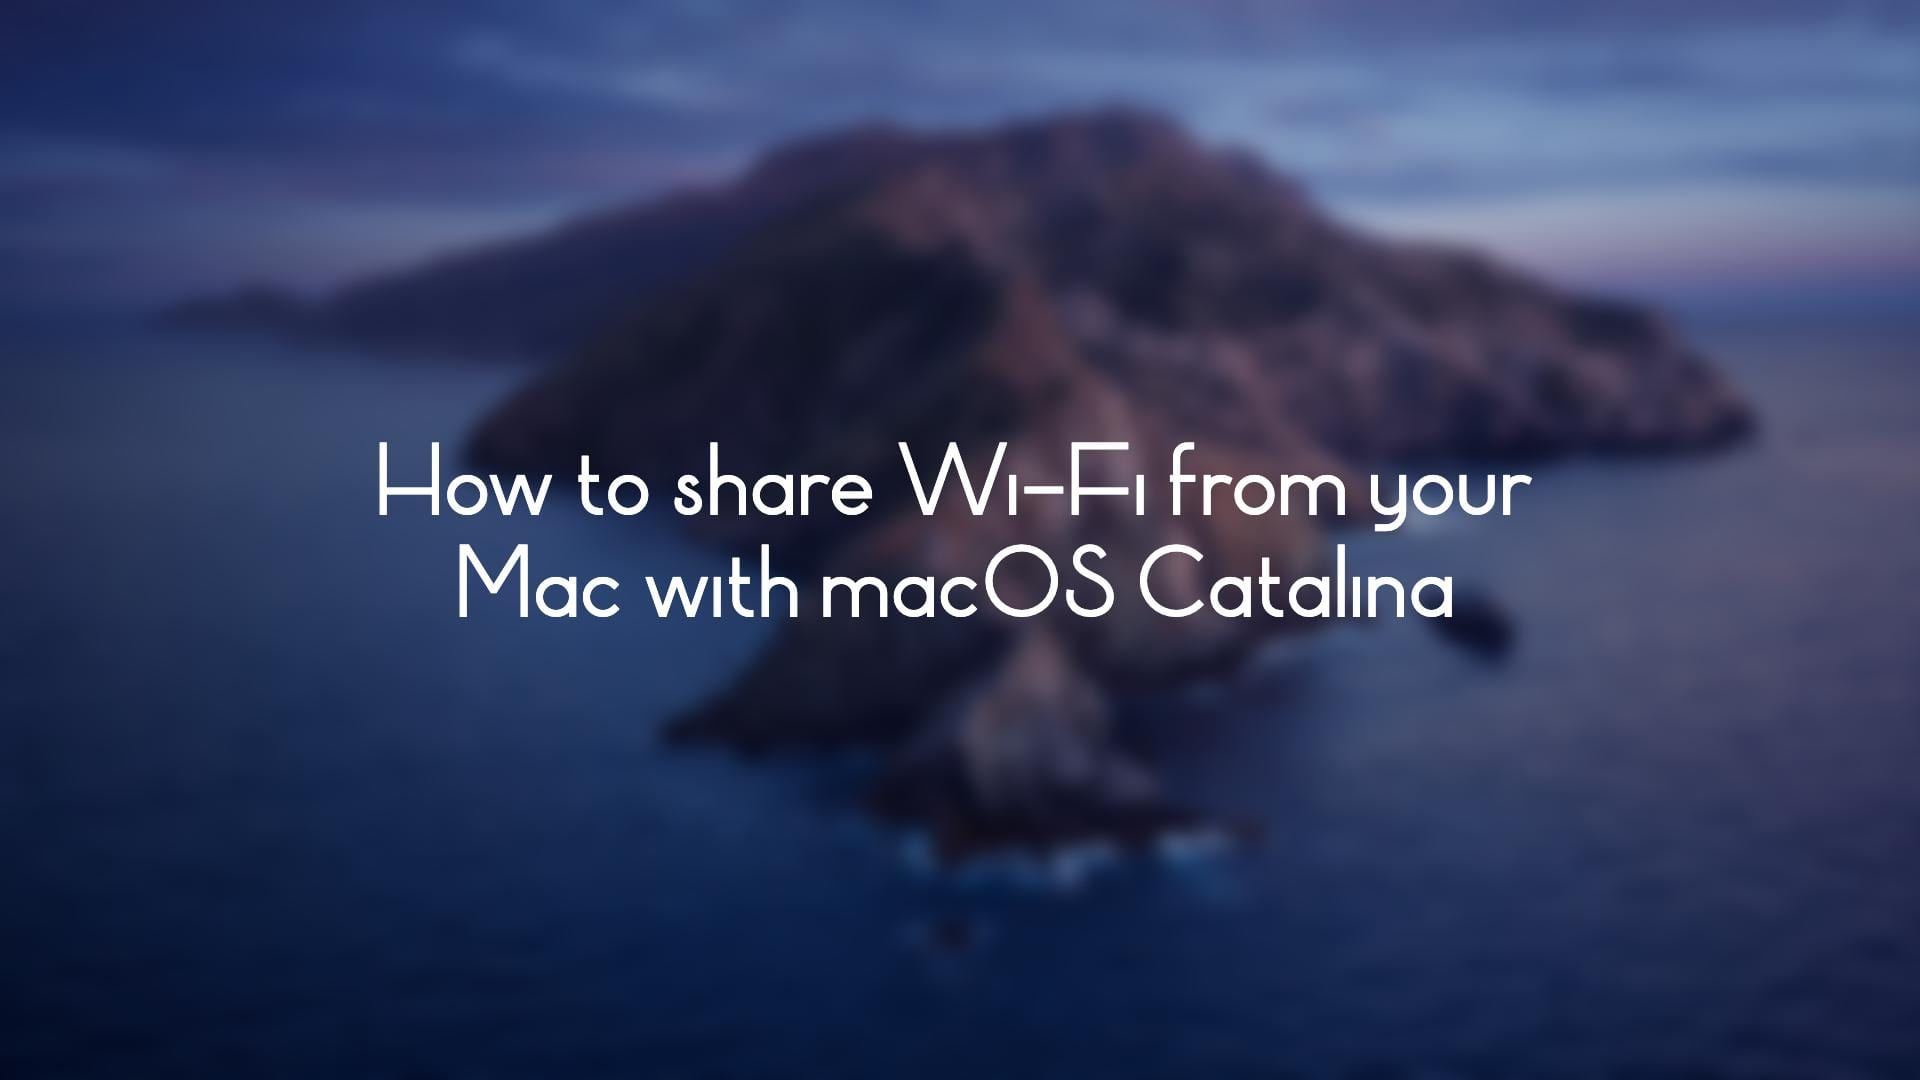 Share Wi-Fi From Your Mac Hero